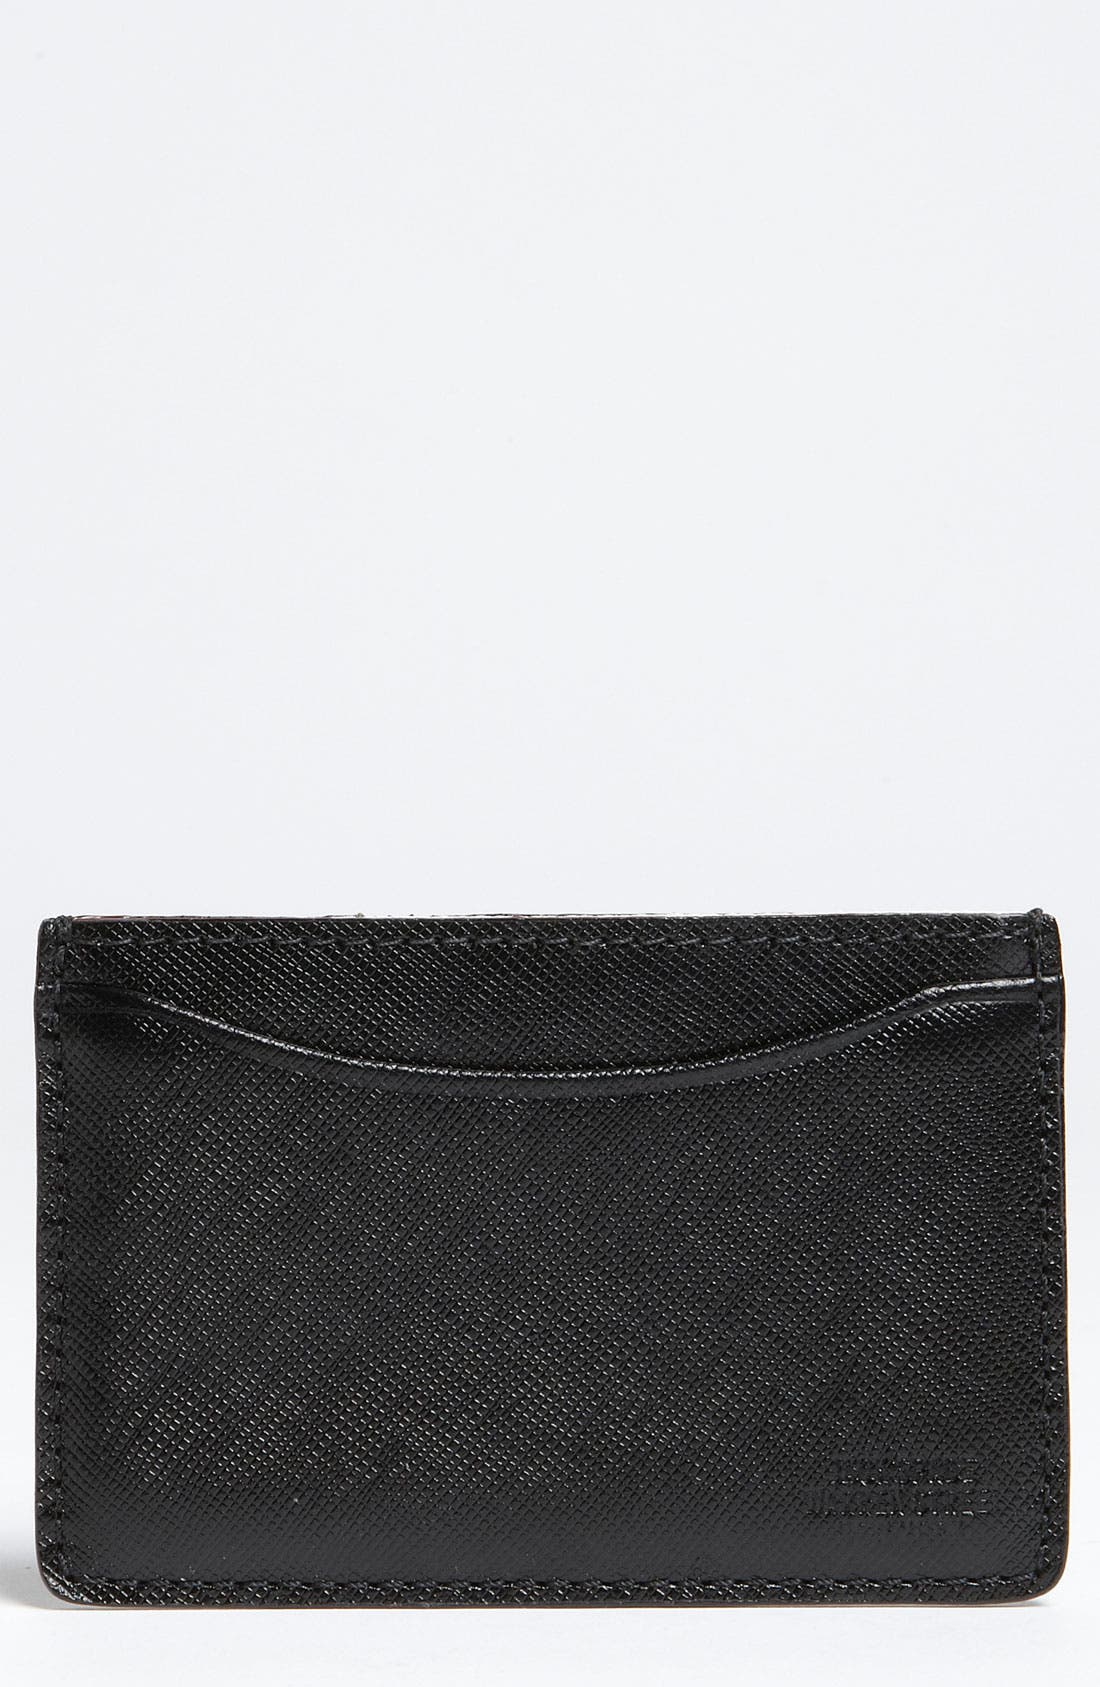 Main Image - Jack Spade Crosshatched Leather Card Holder